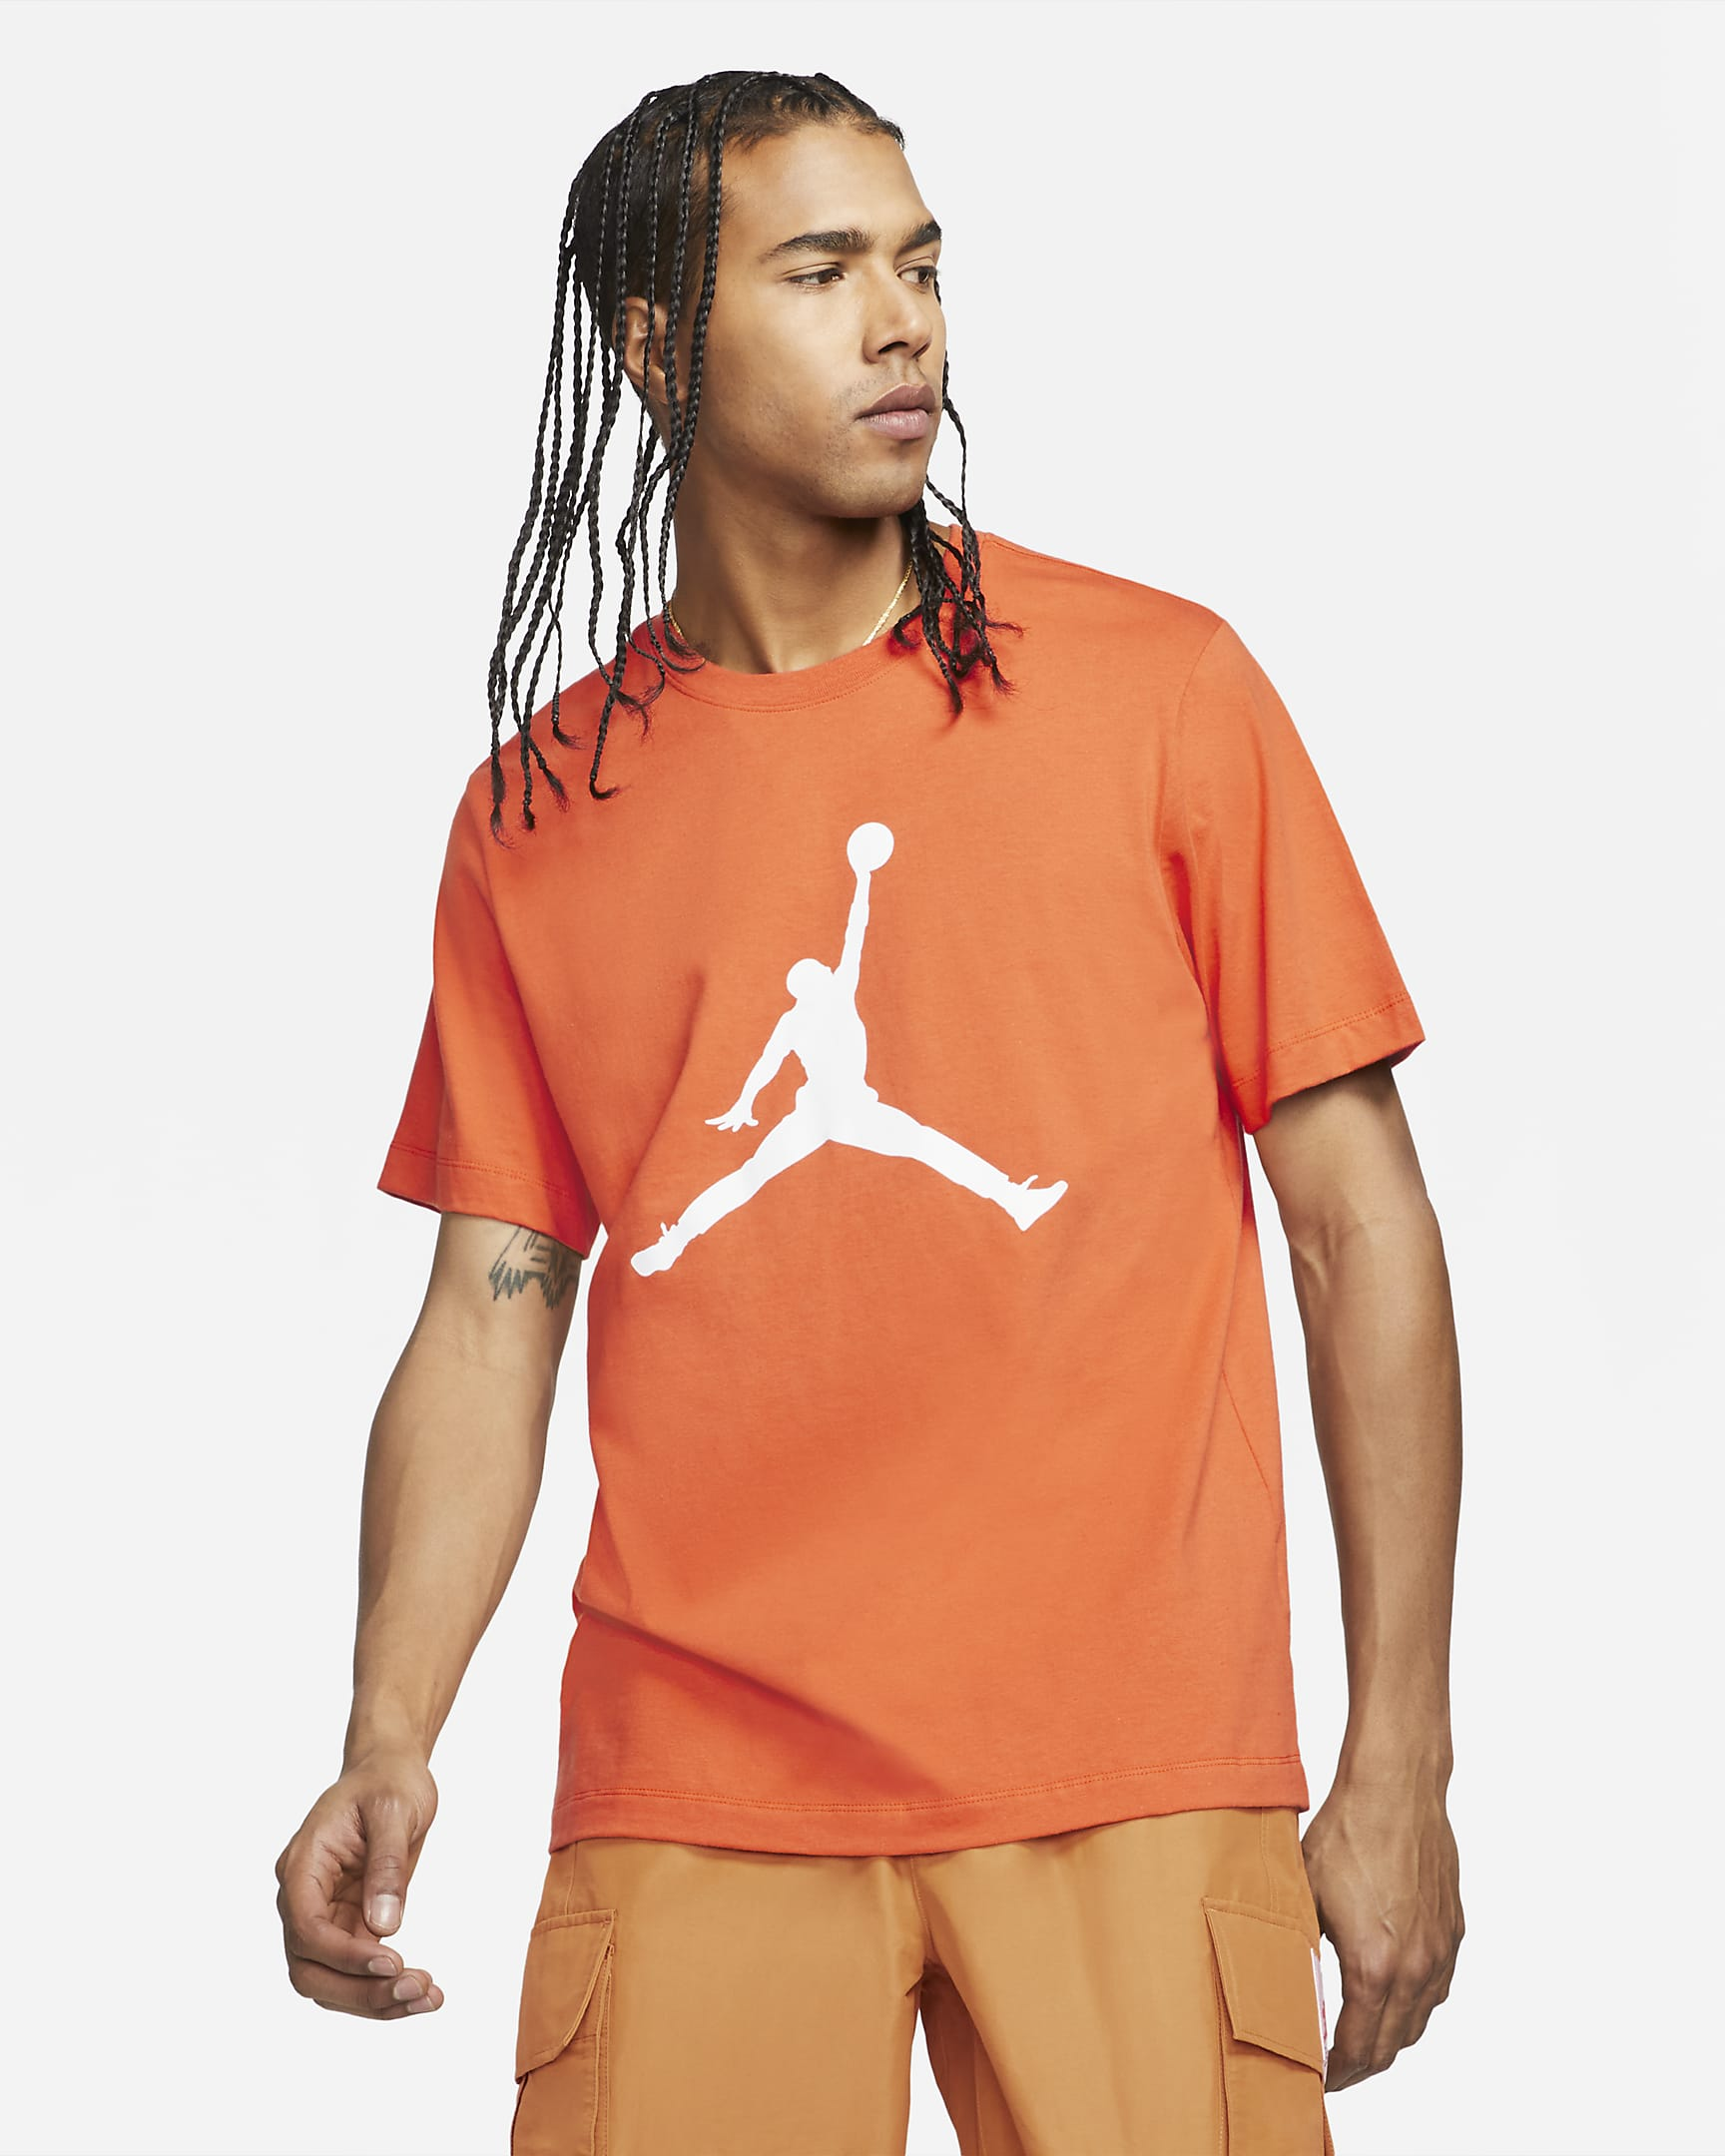 jordan-jumpman-mens-t-shirt-208CL7